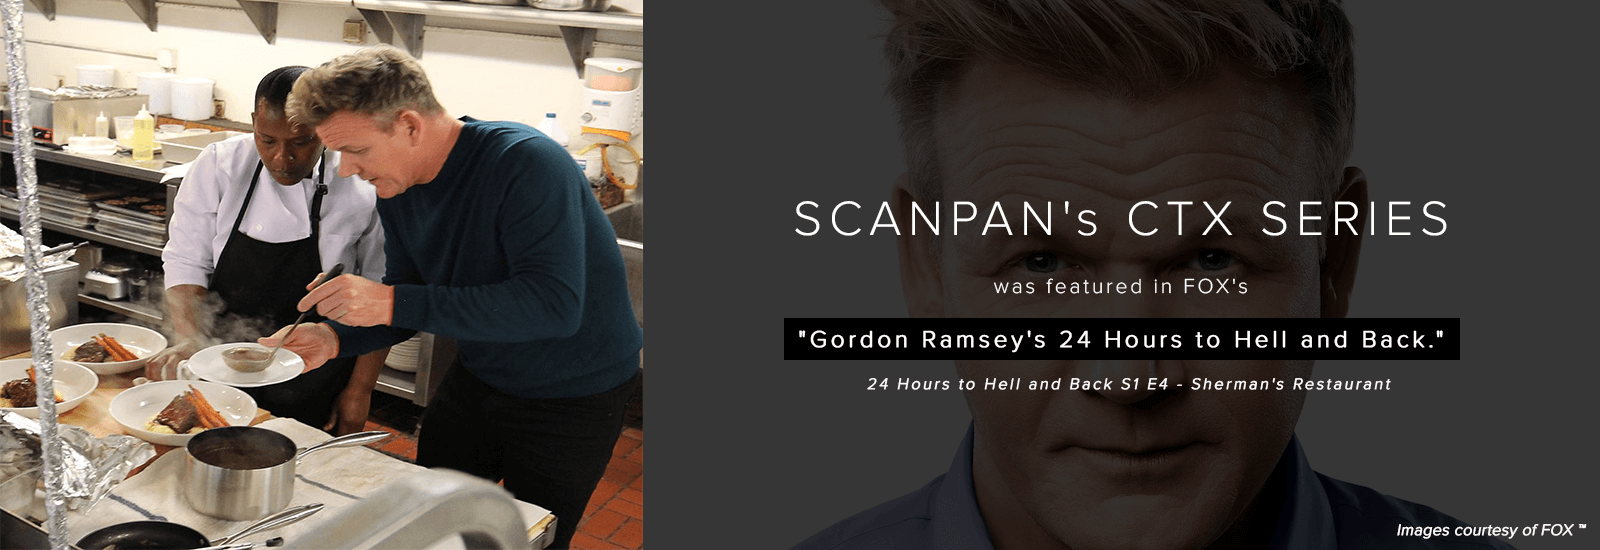 Scanpan's CTX Series | Gordon Ramsey